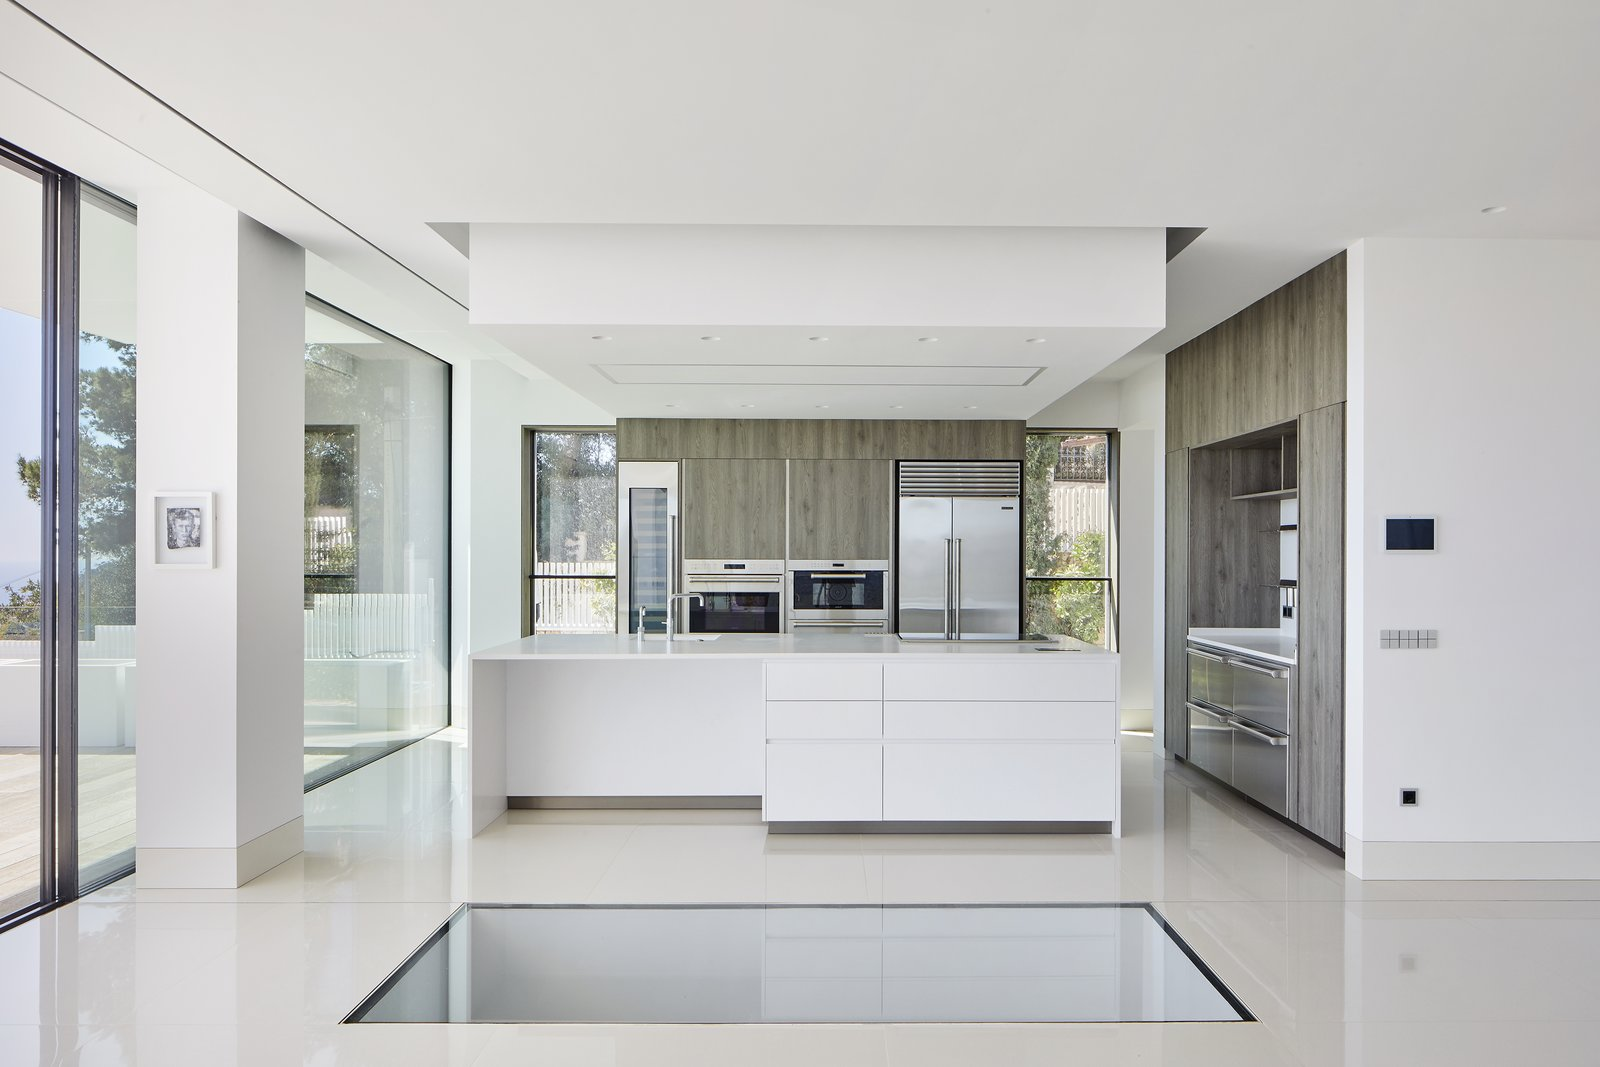 Kitchen, Wall Oven, White, Metal, Microwave, Wine Cooler, Drop In, Laminate, Ceiling, Granite, Range, Range Hood, Dishwasher, Ice Maker, Table, Beverage Center, Cooktops, Wood, Refrigerator, and Porcelain Tile Kitchen.  Best Kitchen Beverage Center Range Ceiling White Table Drop In Ice Maker Photos from 廚房